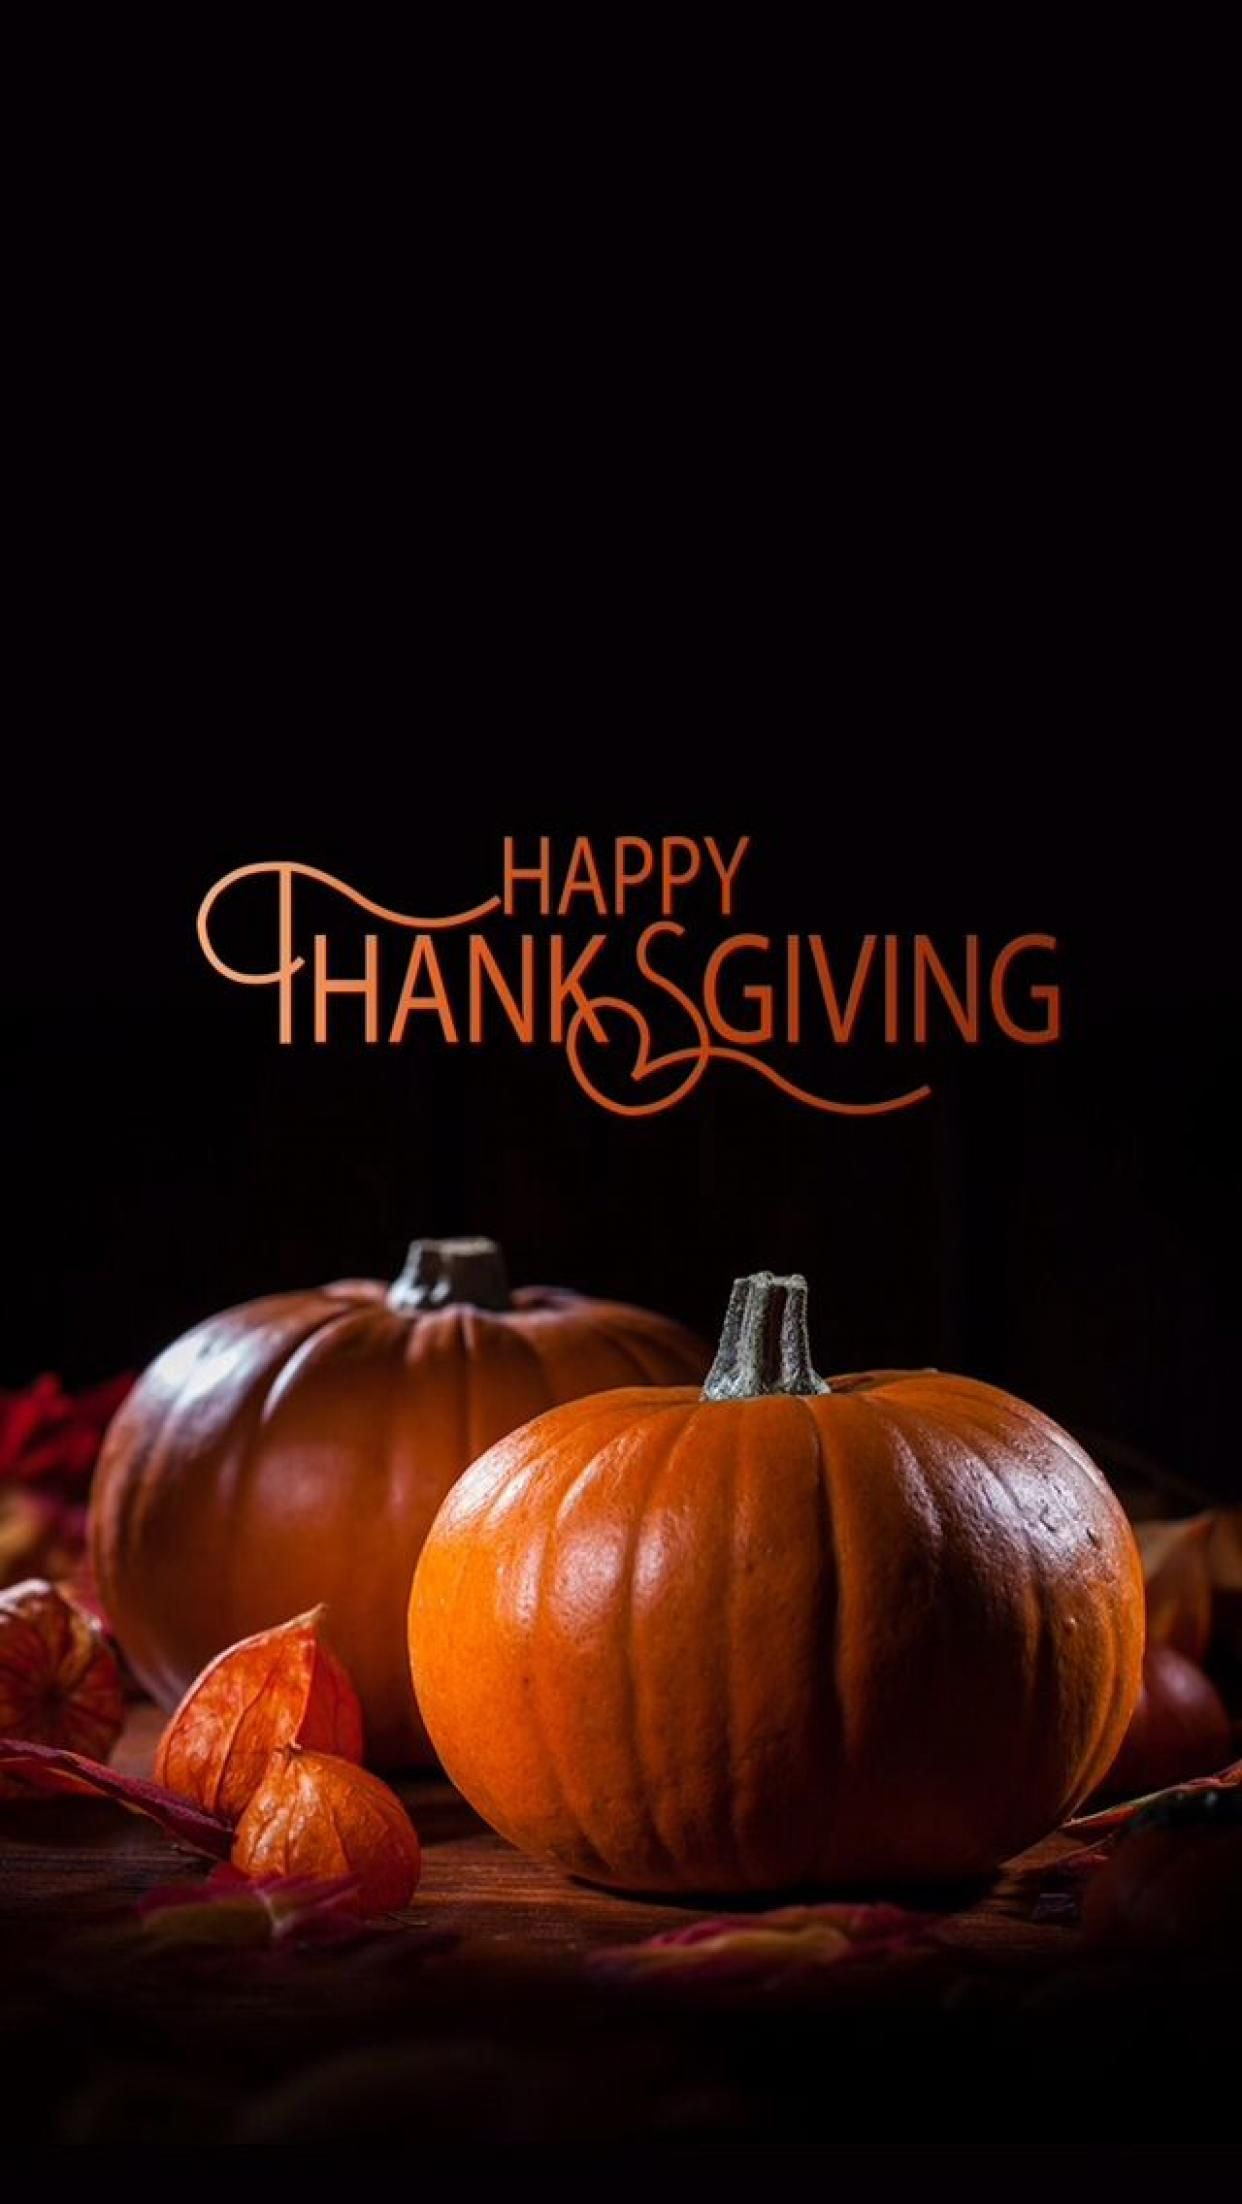 iphone 6 retina wallpaper Happy thanksgiving wallpaper